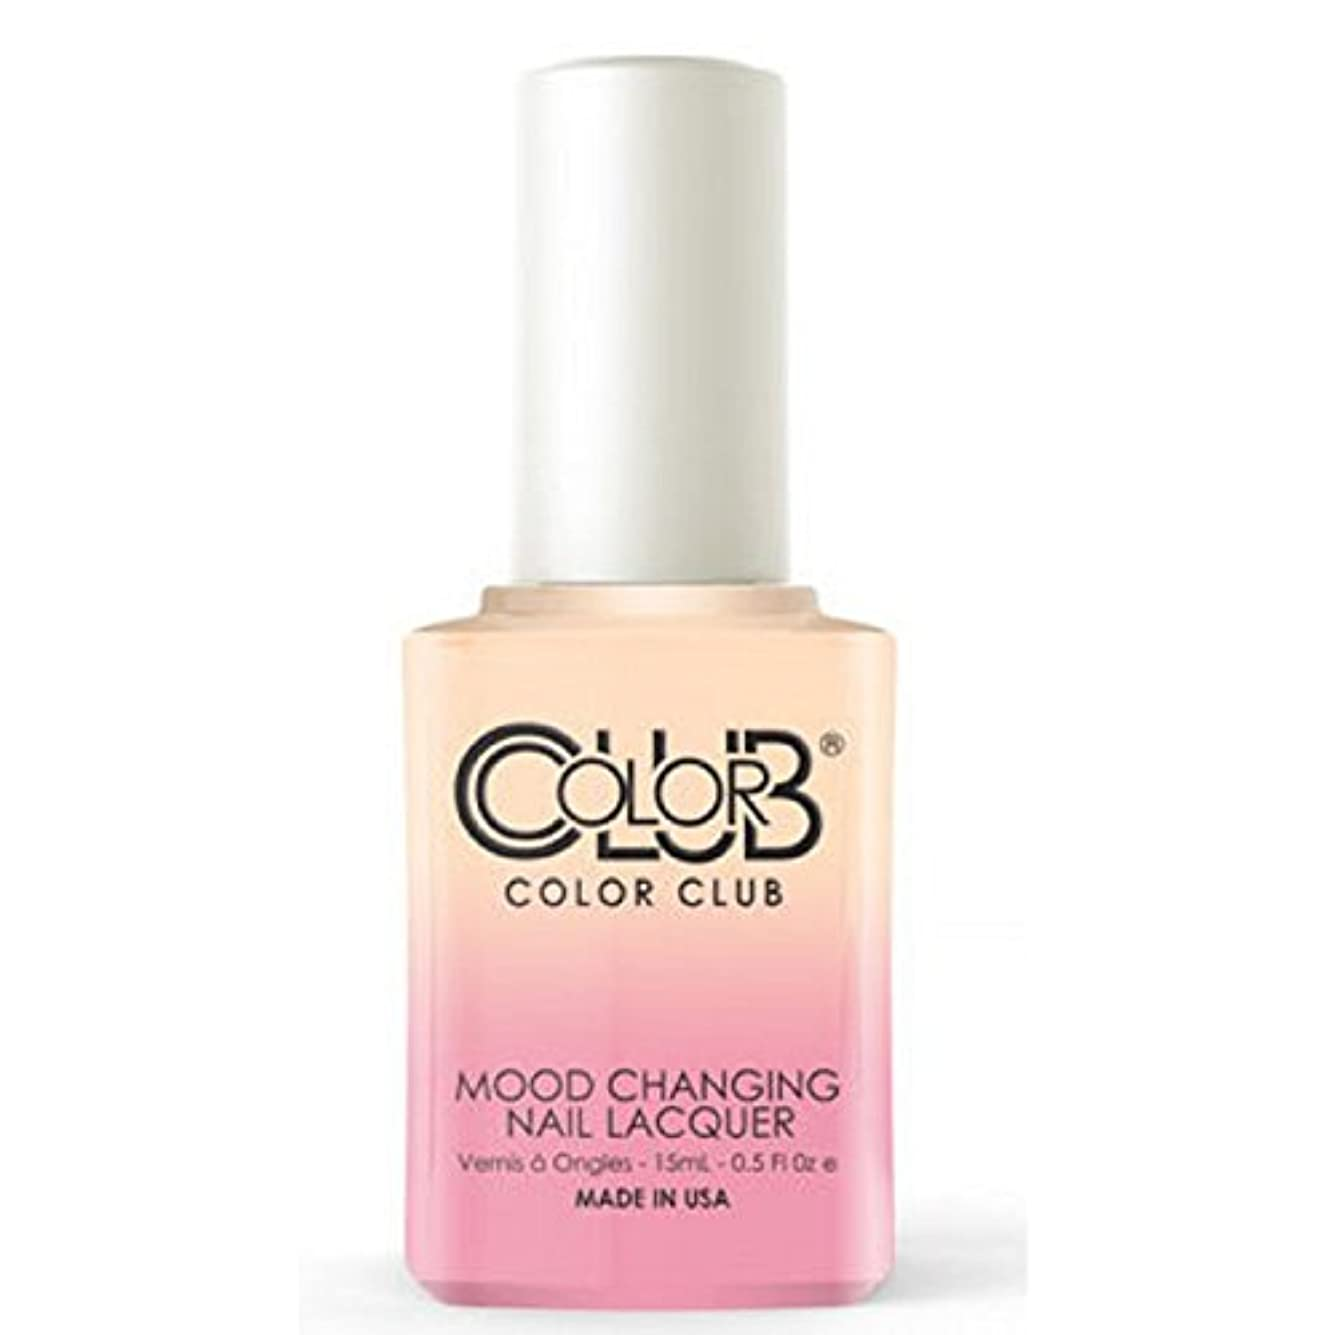 荒涼としたその間パネルColor Club Mood Changing Nail Lacquer - Old Soul - 15 mL / 0.5 fl oz